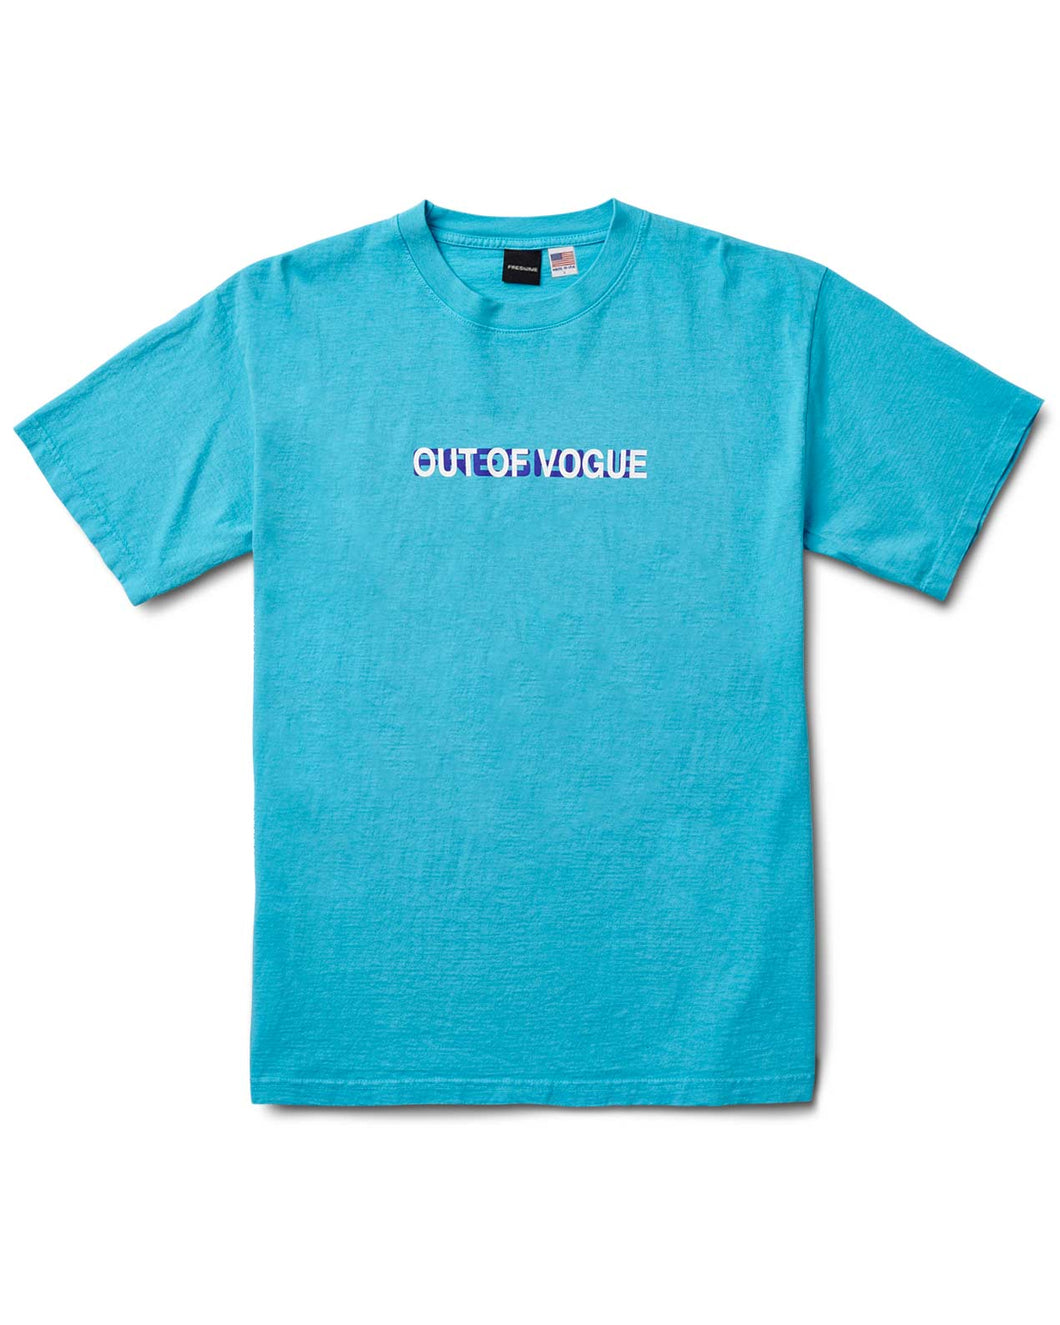 Out of Vogue 2 Tee Blue